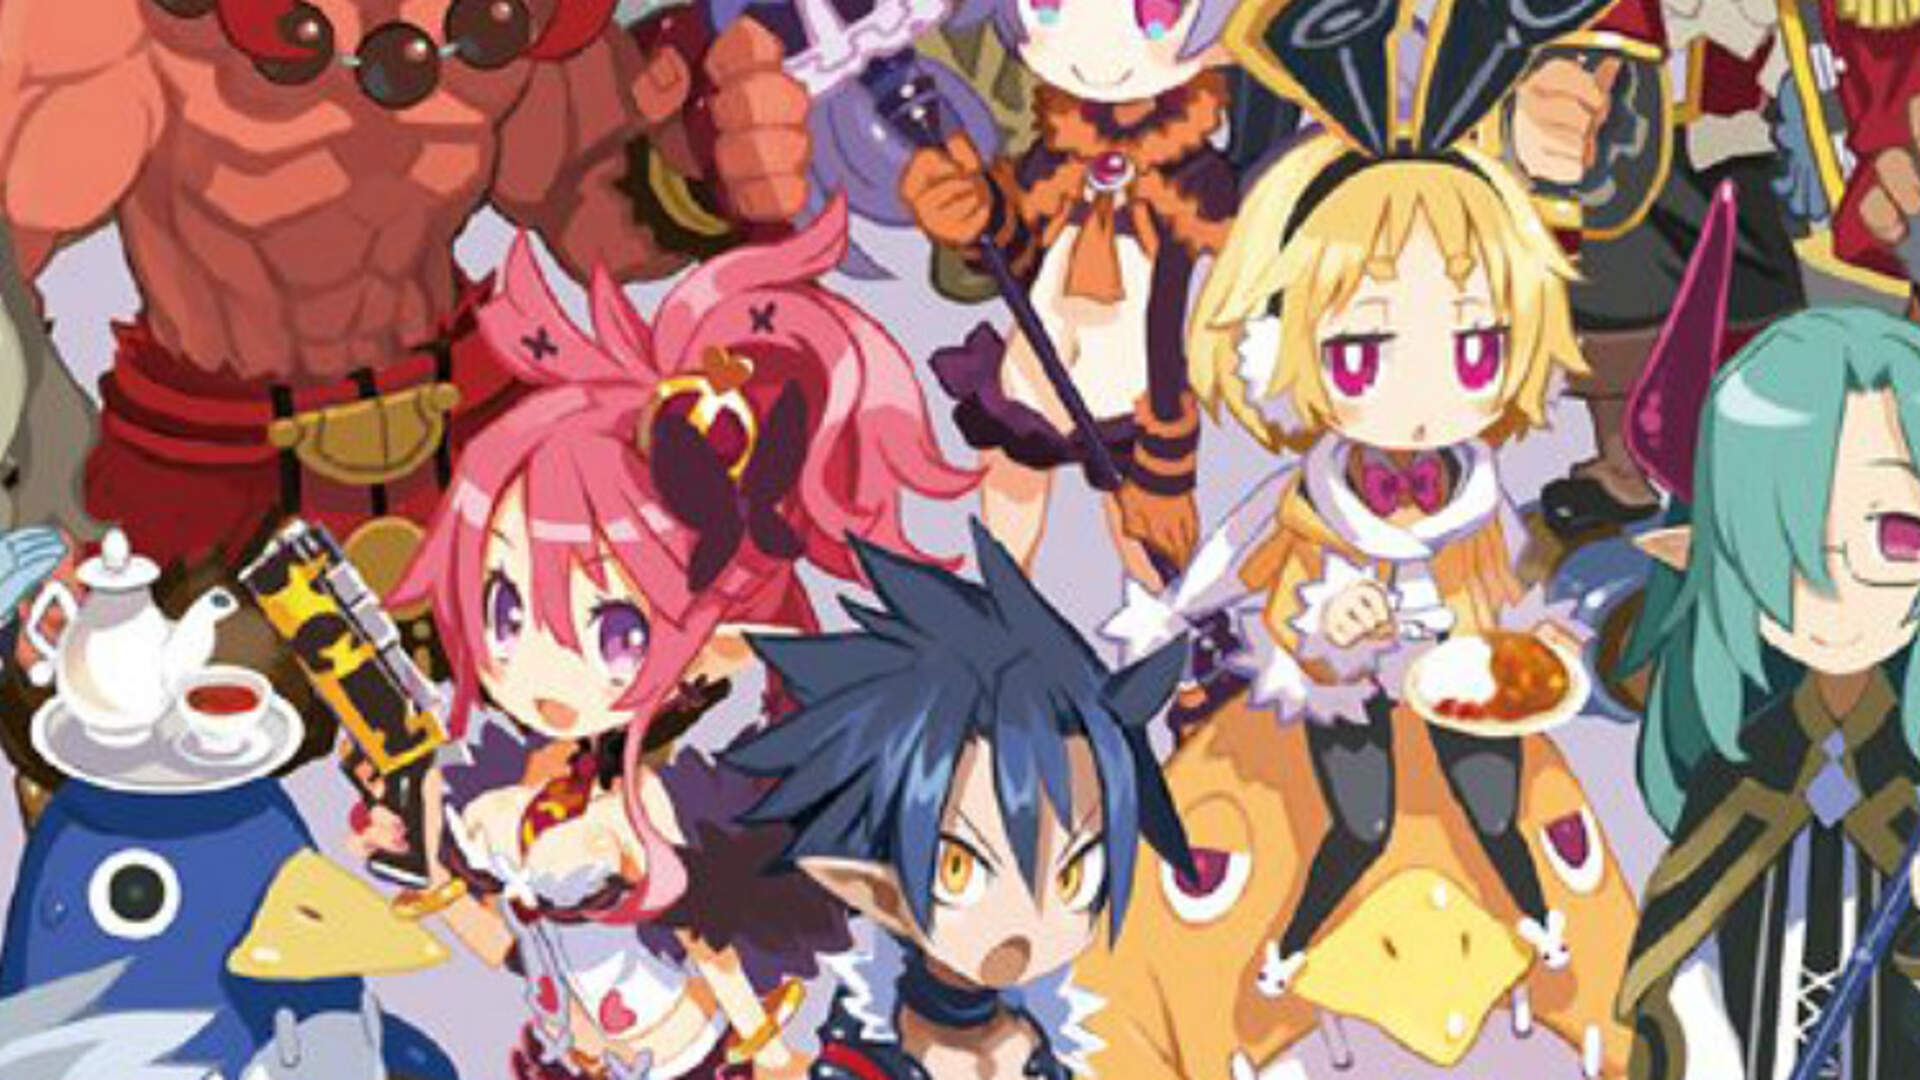 Disgaea 5 Alliance of Vengeance PS4 Review: Roaring Rampage of Revengeance